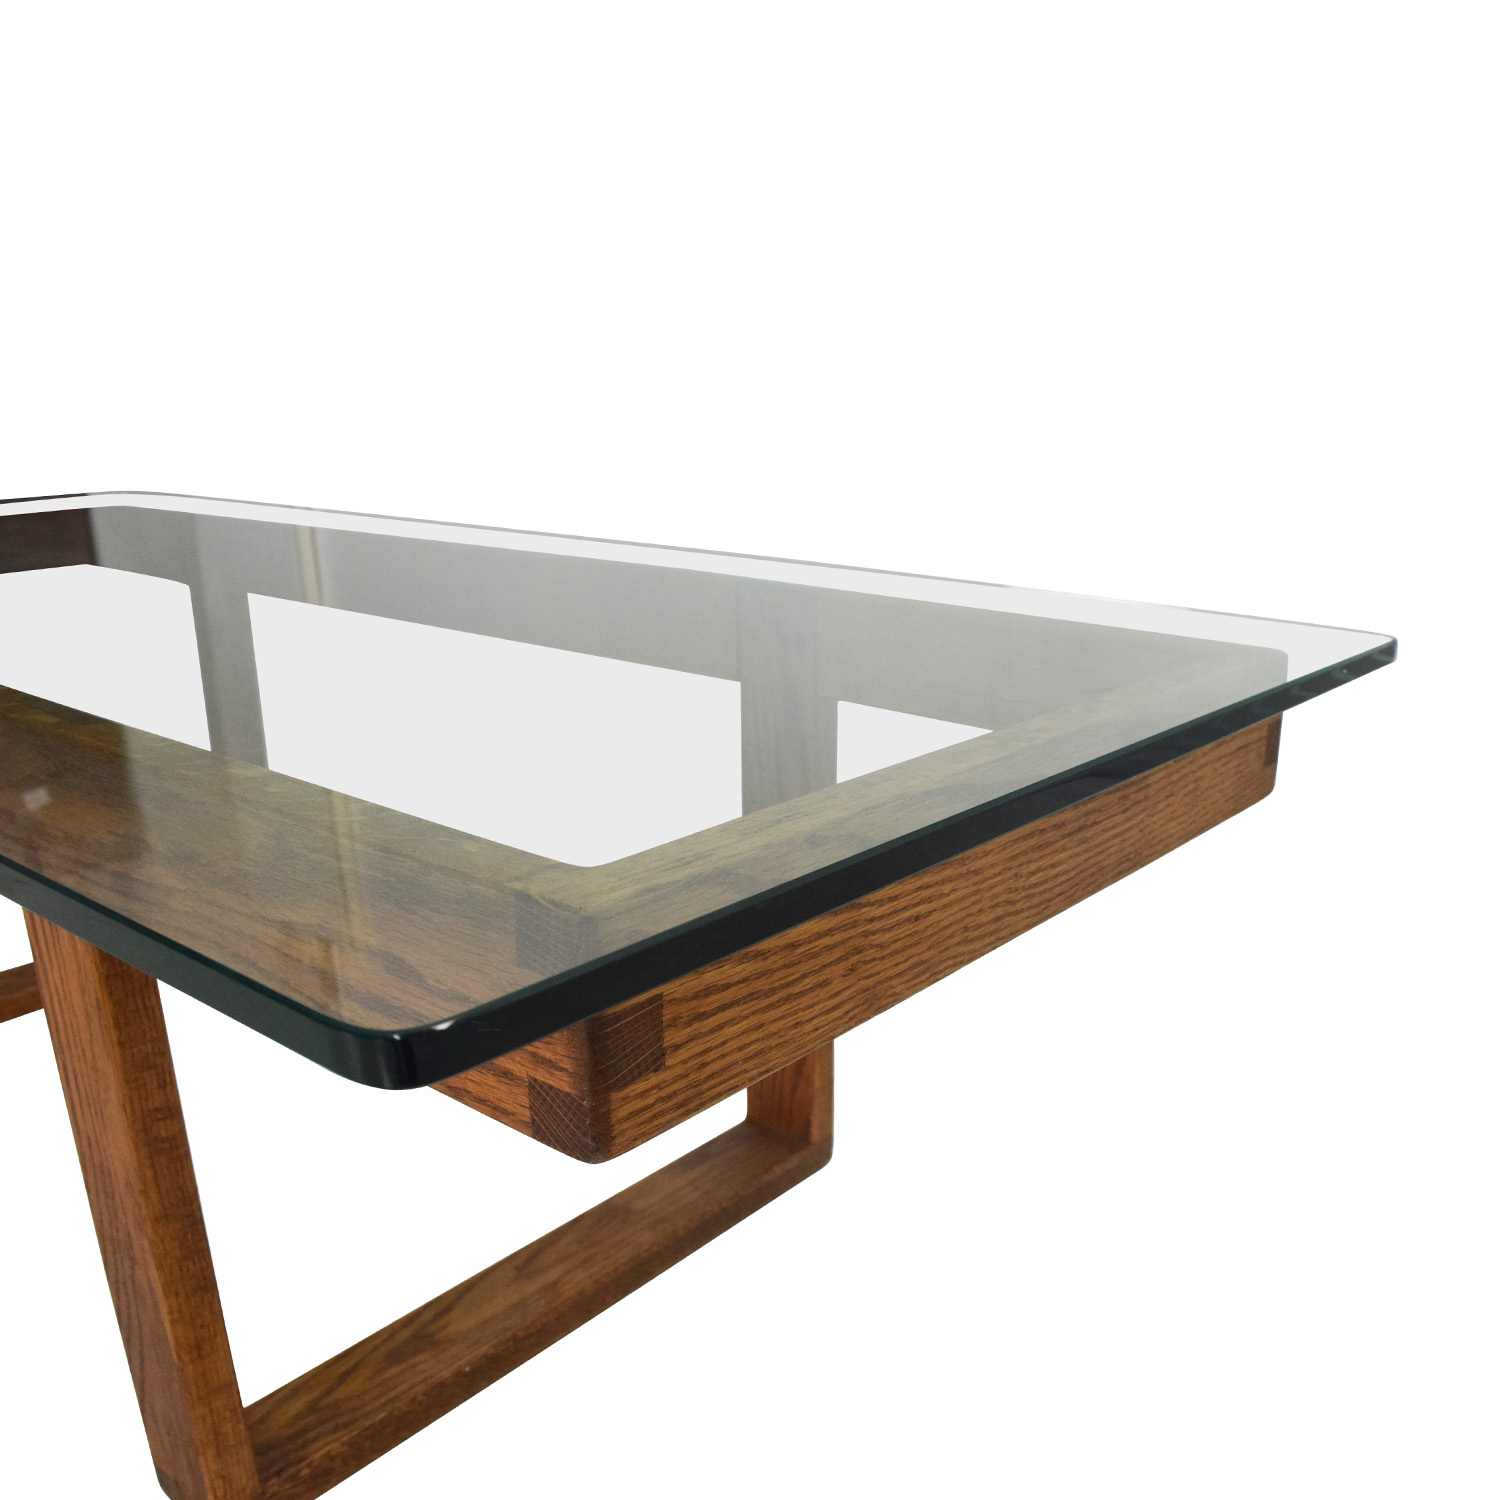 60 Off Unknown Brand Antique Glass Coffee Table Tables